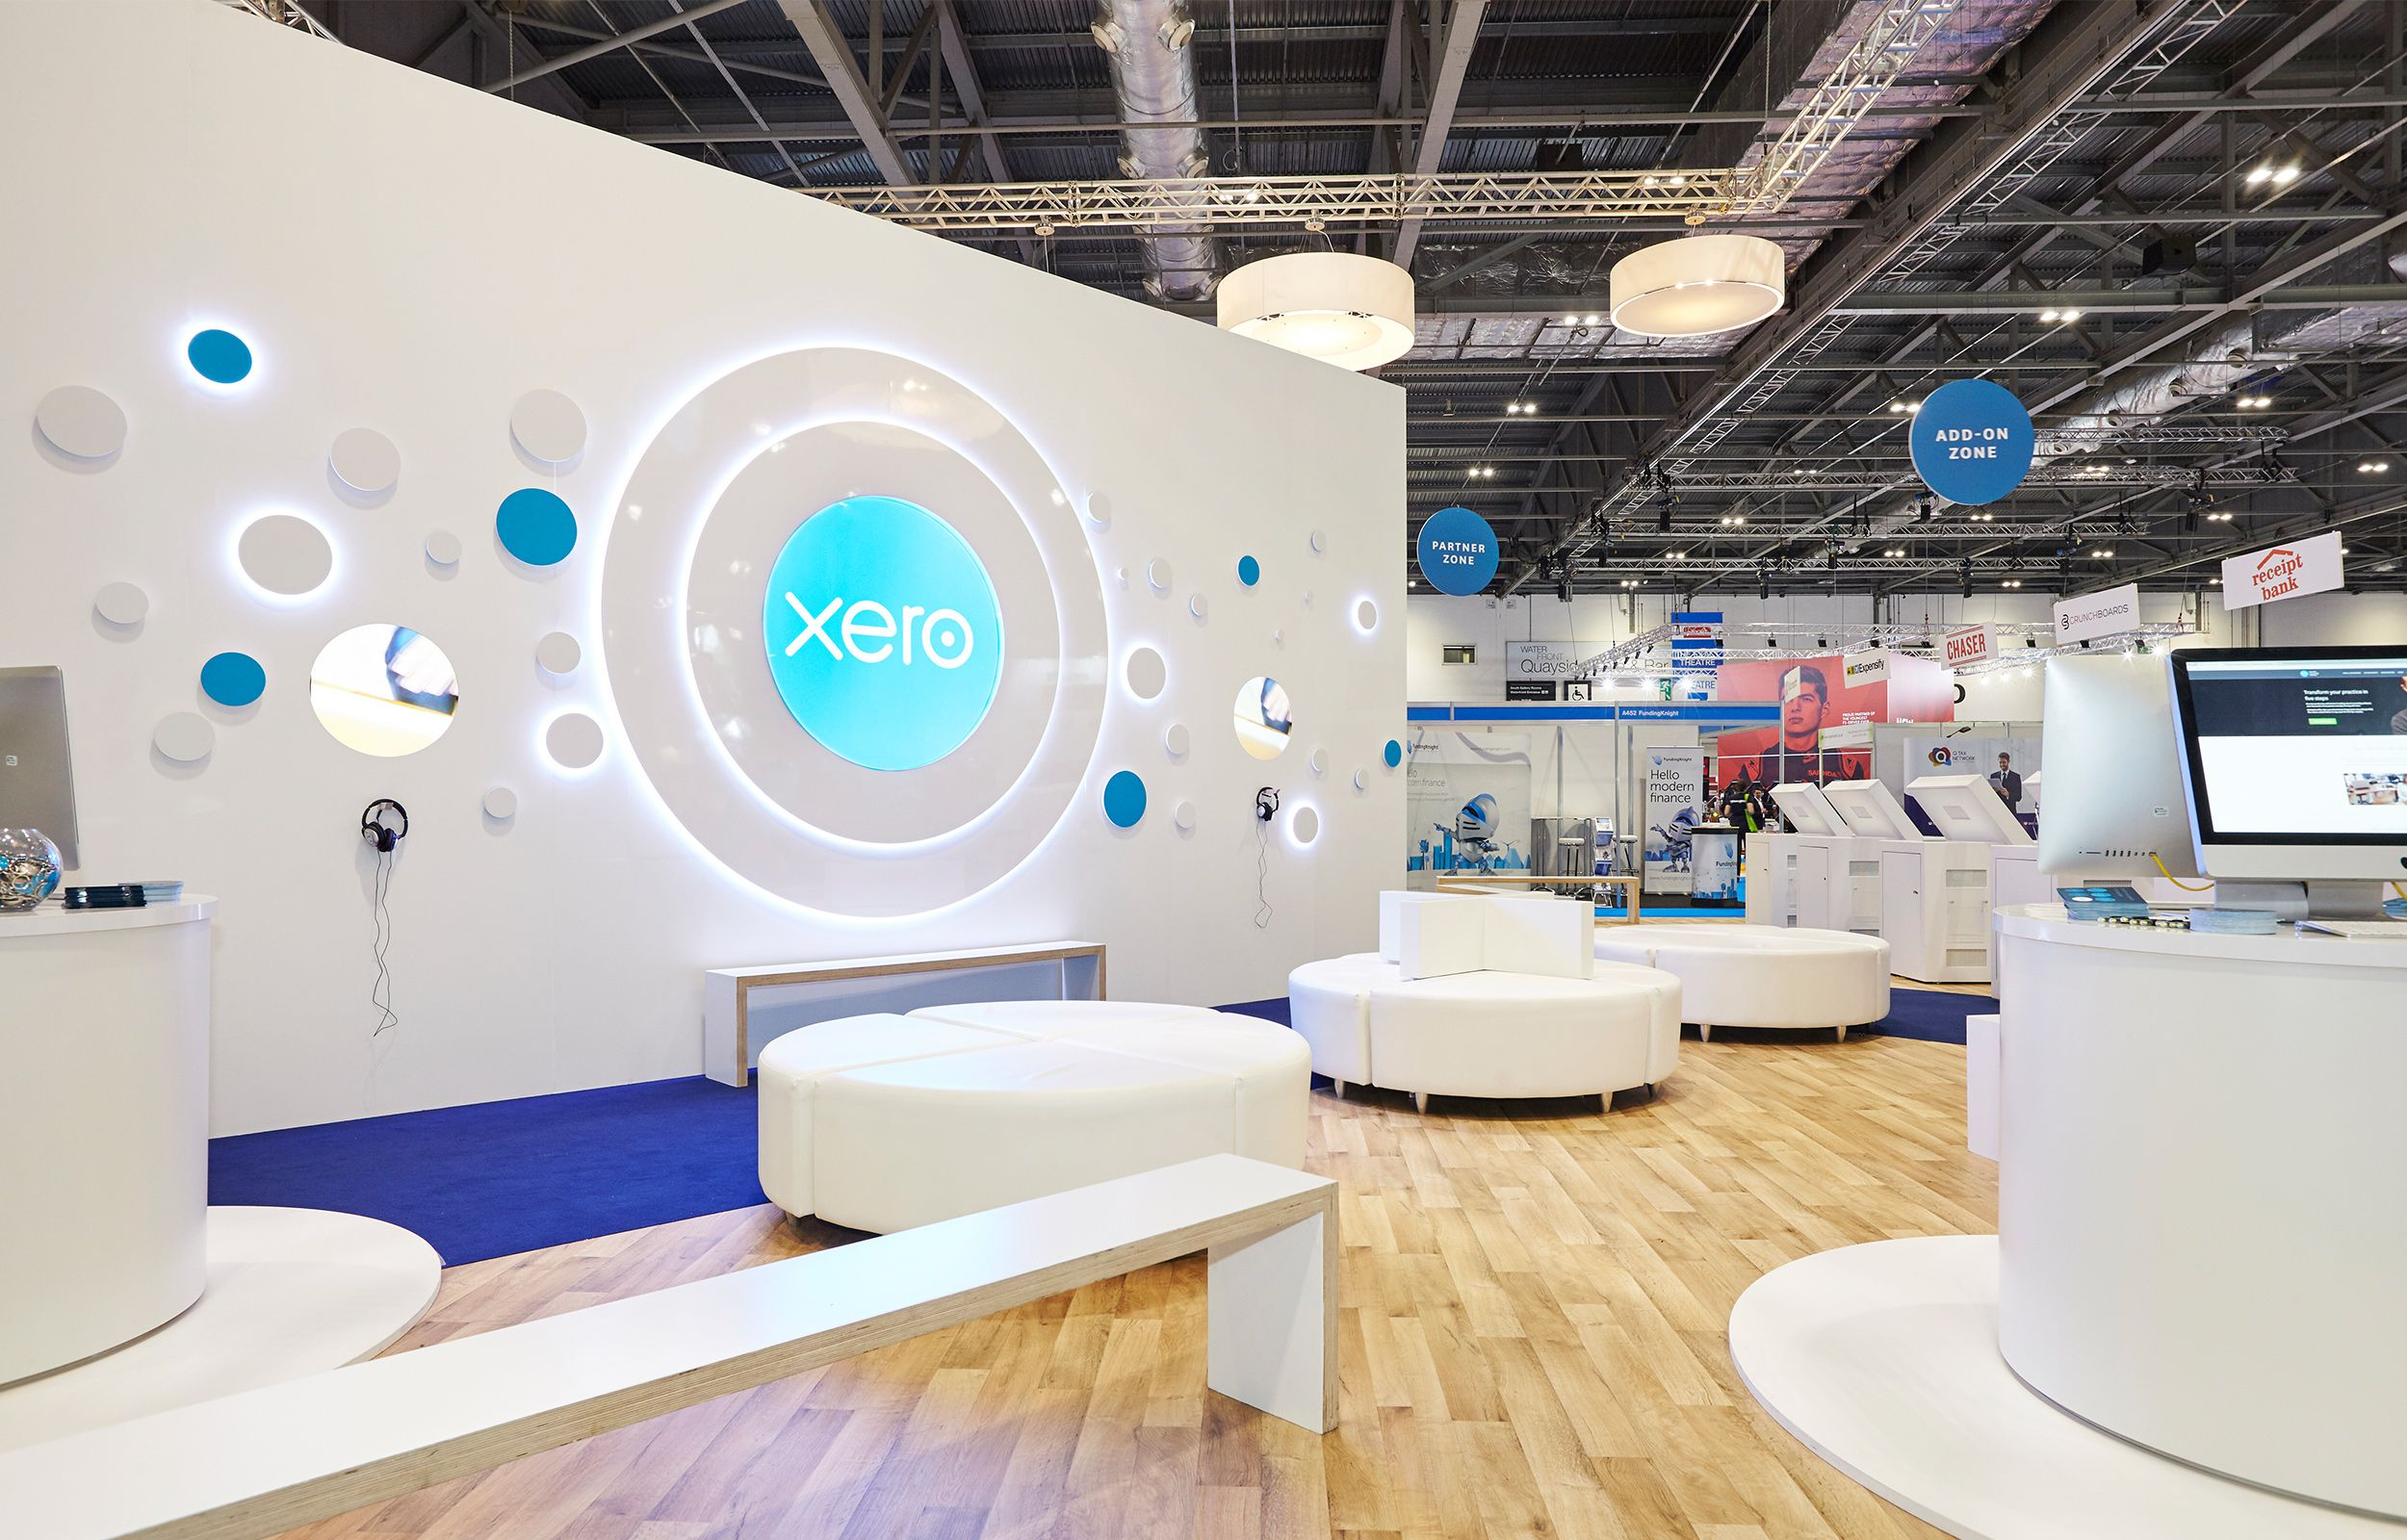 Freelance Exhibition Stand Design : Xero exhibition stand — megan wilson dea styles of